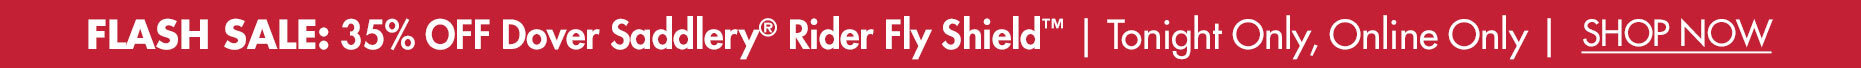 Flash Sale: 35% OFF Dover Saddlery® Rider Fly Shield™